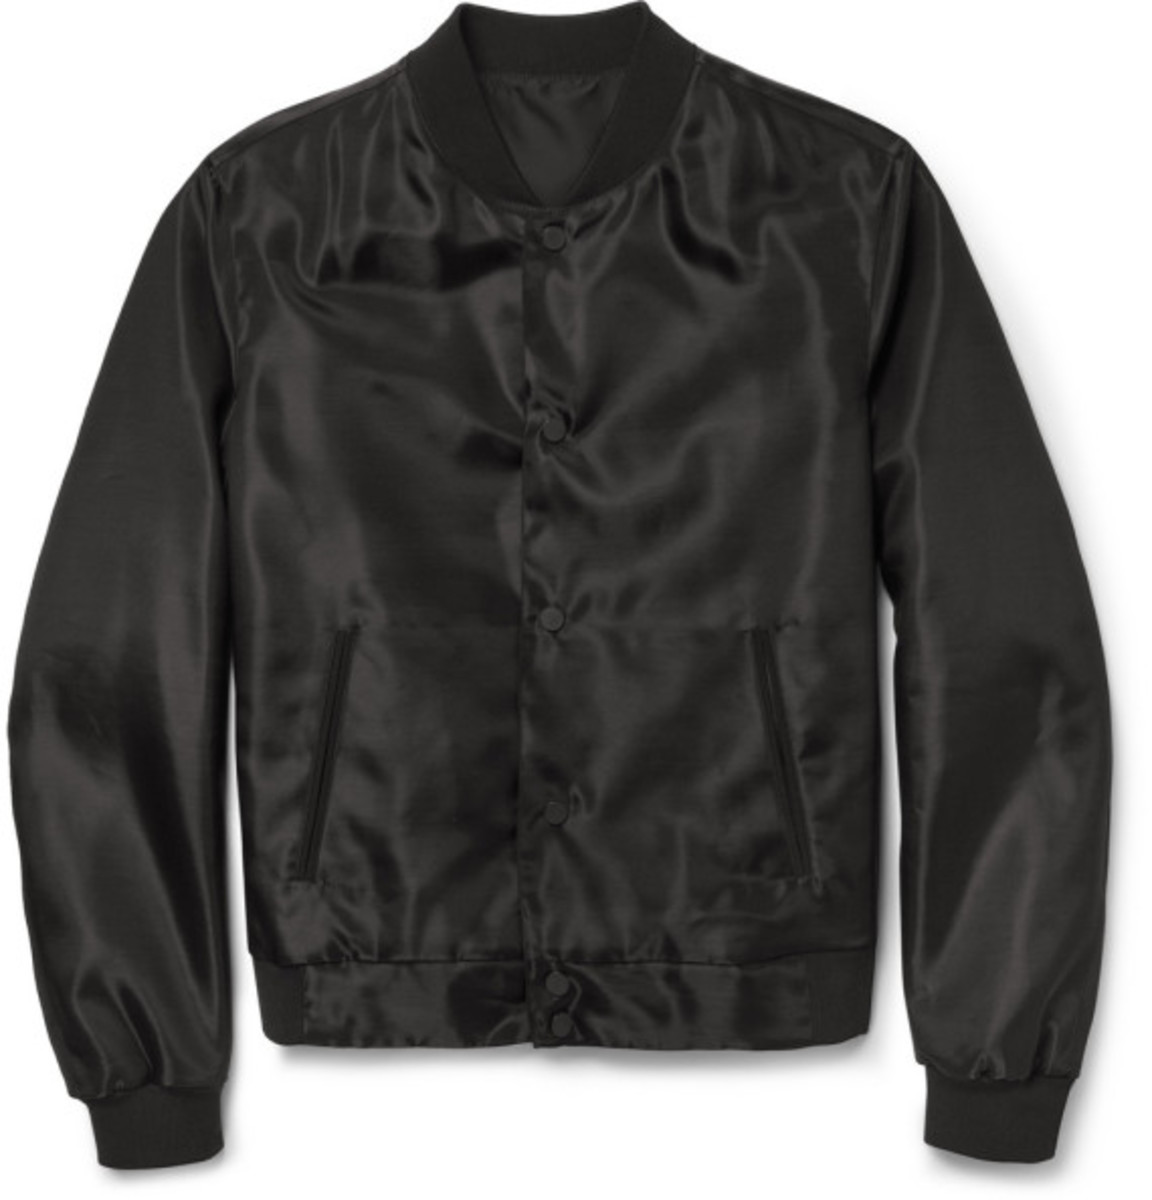 Spring 2014 Trends - Top 10 Bomber Jackets Available Now - 10